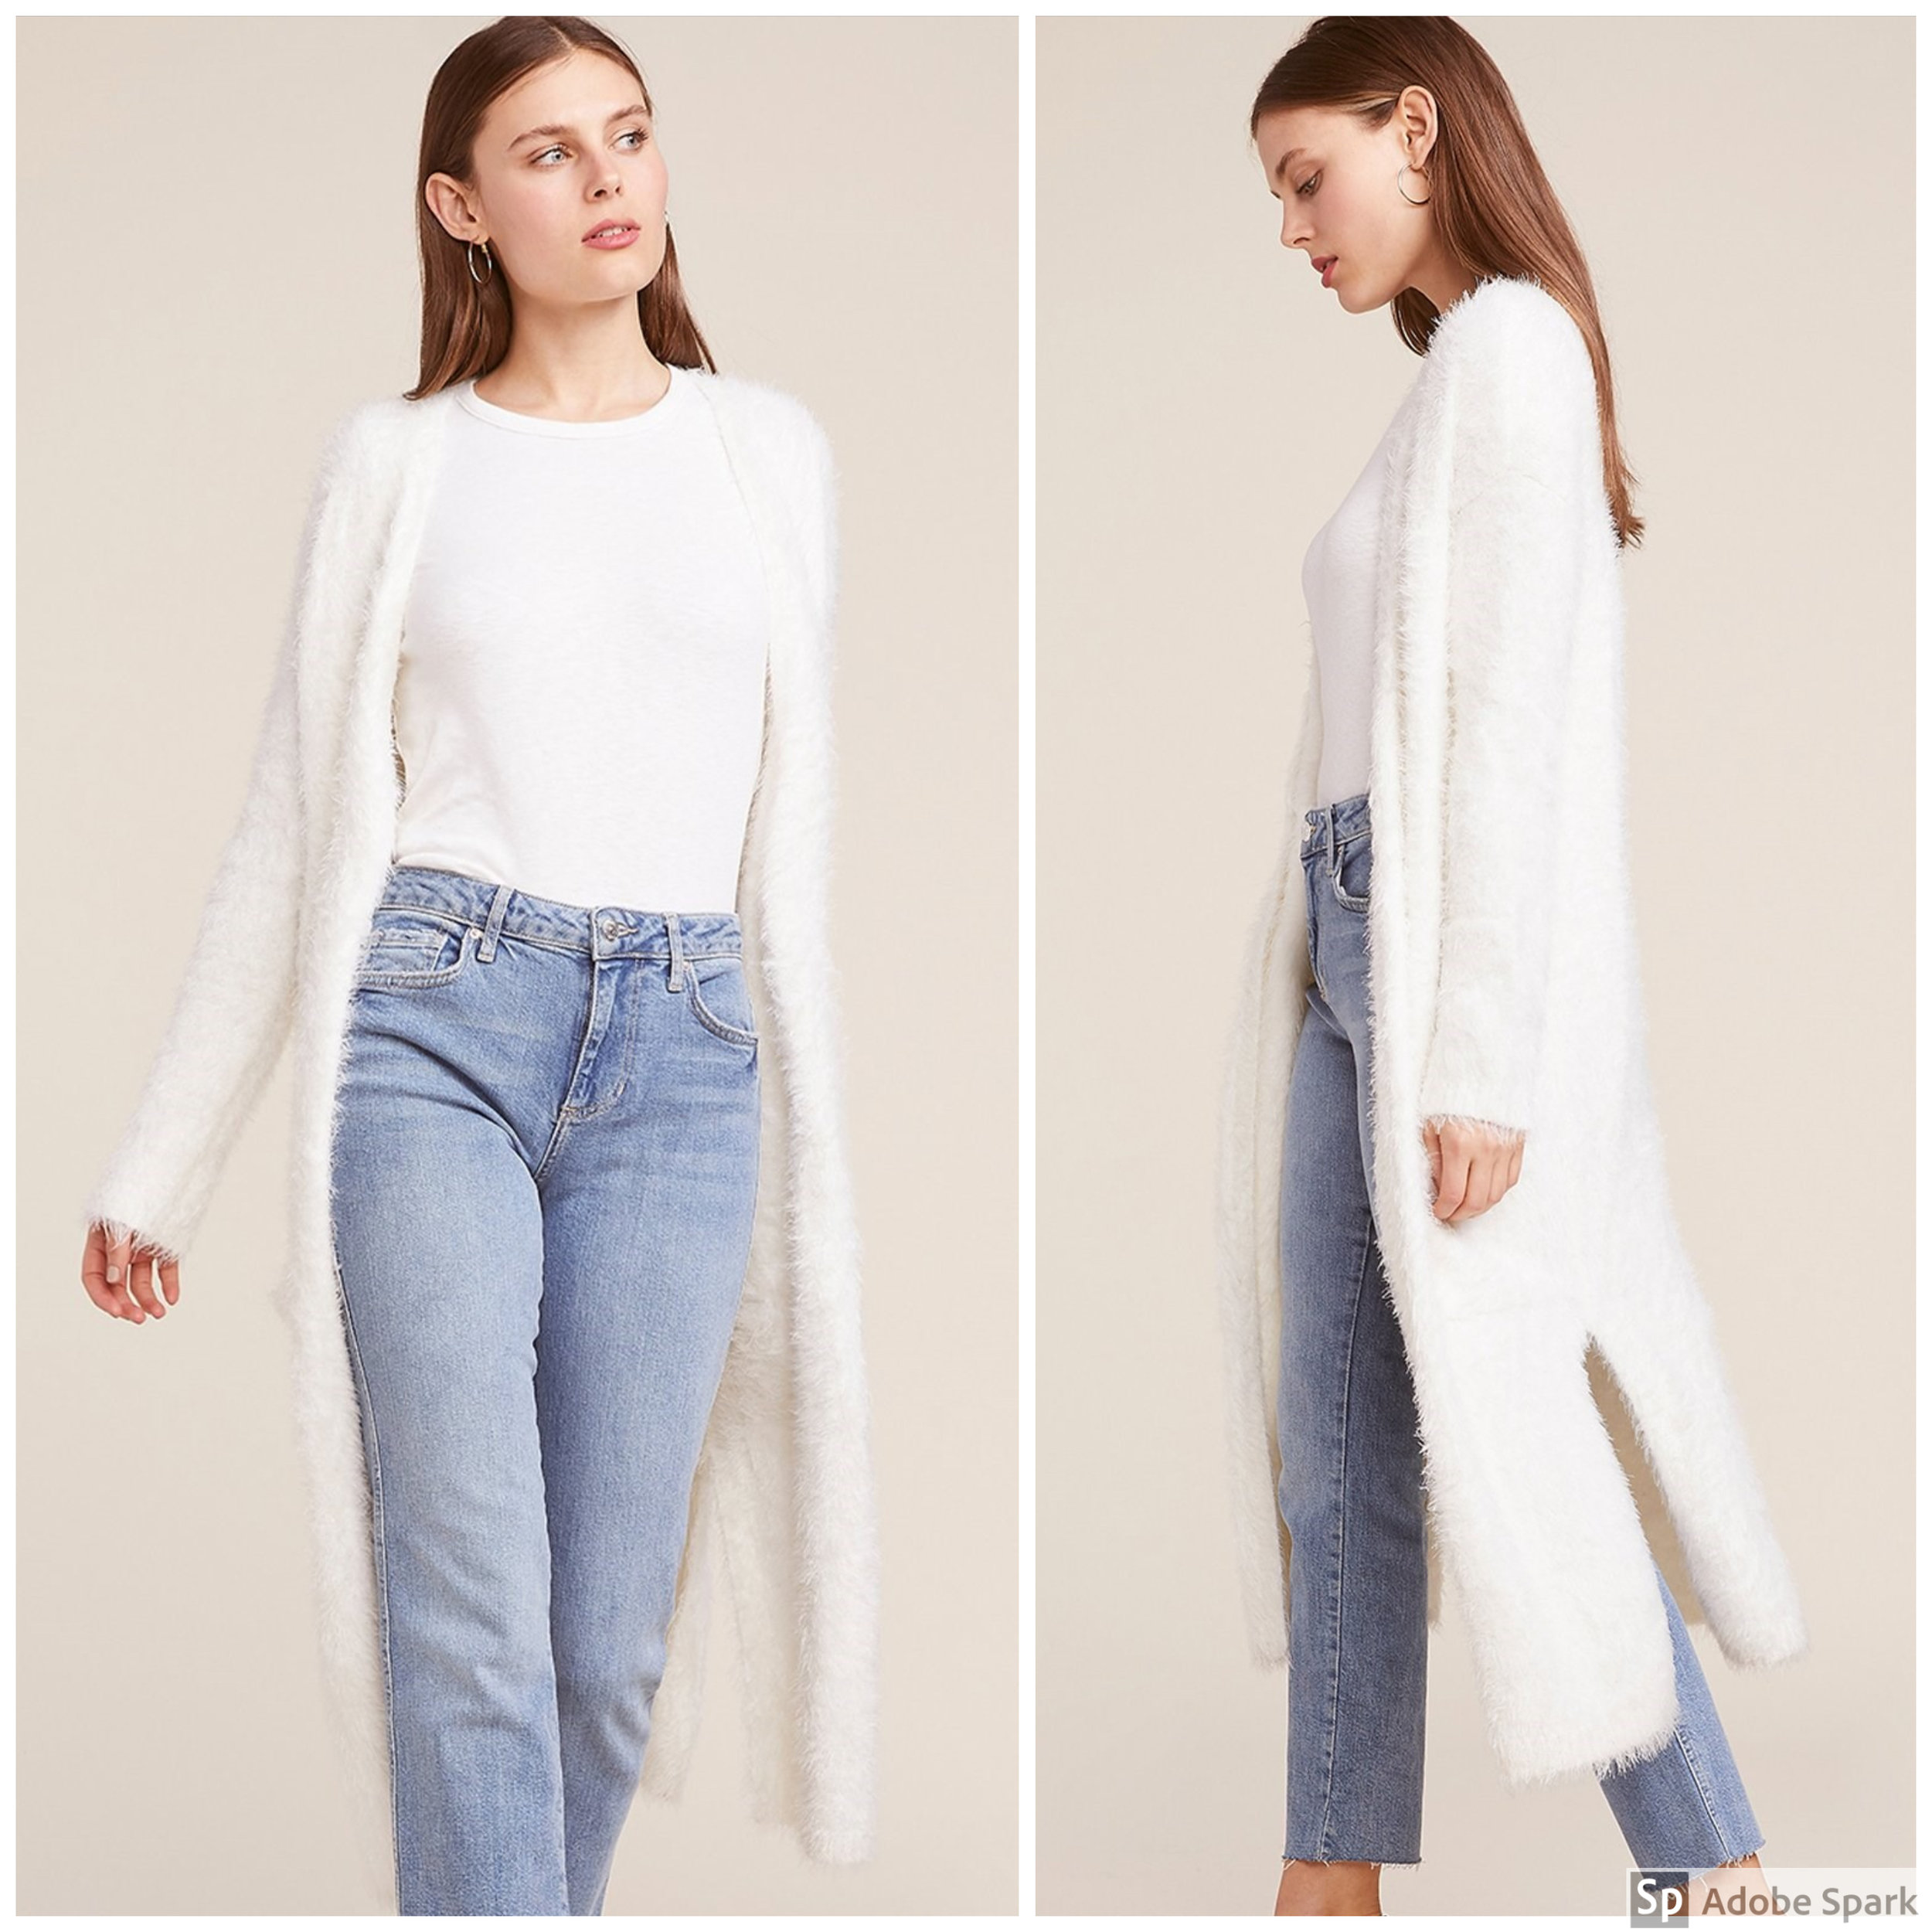 IvoryCardigan - Spotlight Features: knee length & all-over super soft eyelash textureWhy It's Perfect for Fall: It's soft and fuzzy, warm and cozy, & neutral enough to go with anything! Can a sweater get any better than that?